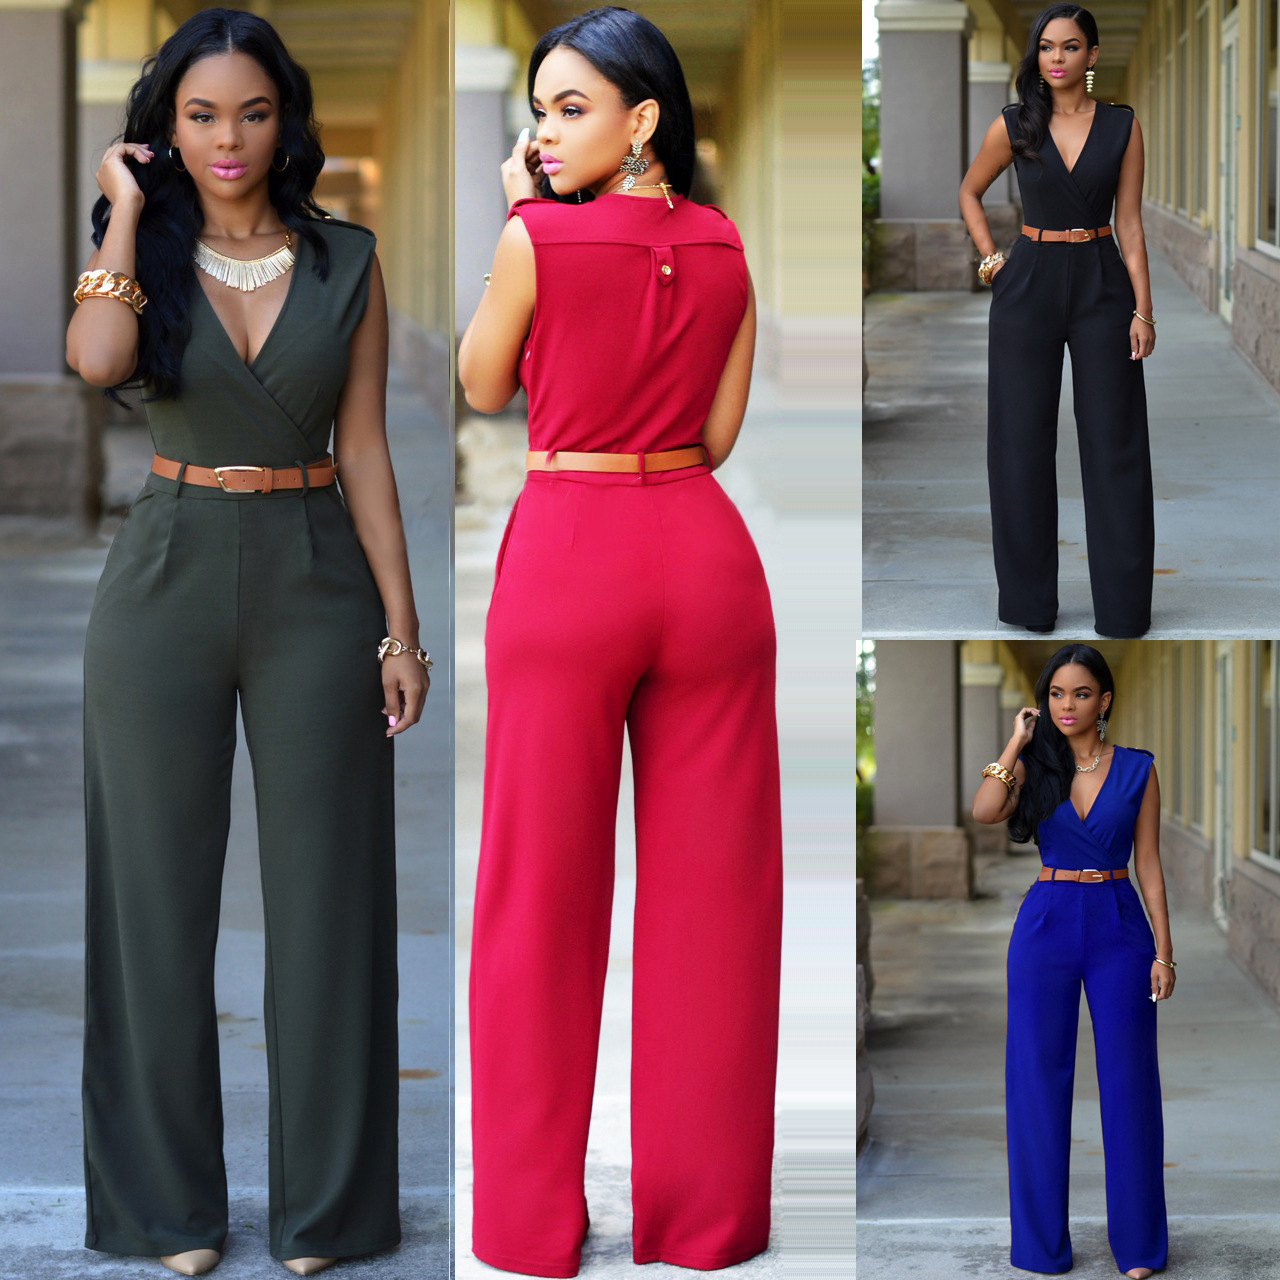 df648421e659 2016 Aliexpress European and American Fashion Ladies Loose Slim Casual  Jumpsuit Top Selling(with Belt)-in Jumpsuits from Women s Clothing on  Aliexpress.com ...